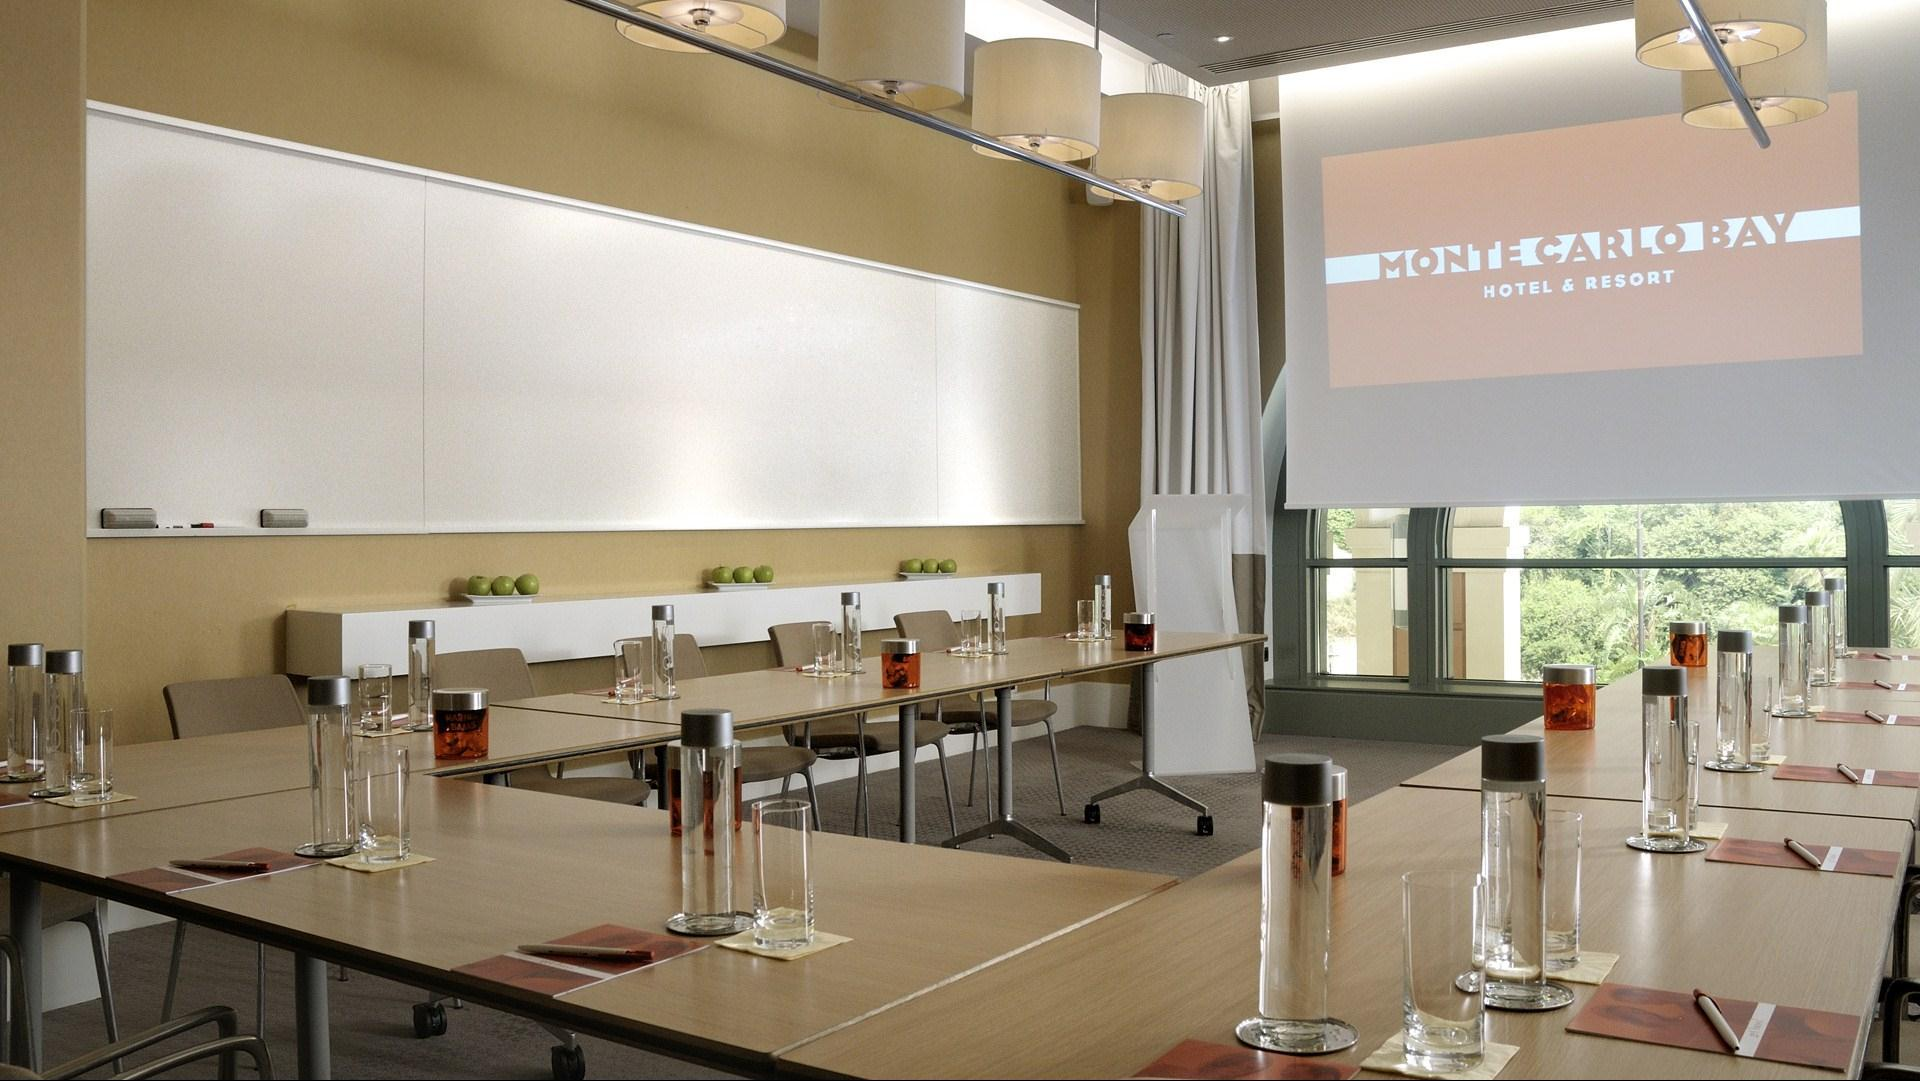 Meetings and Events at Monte Carlo Bay